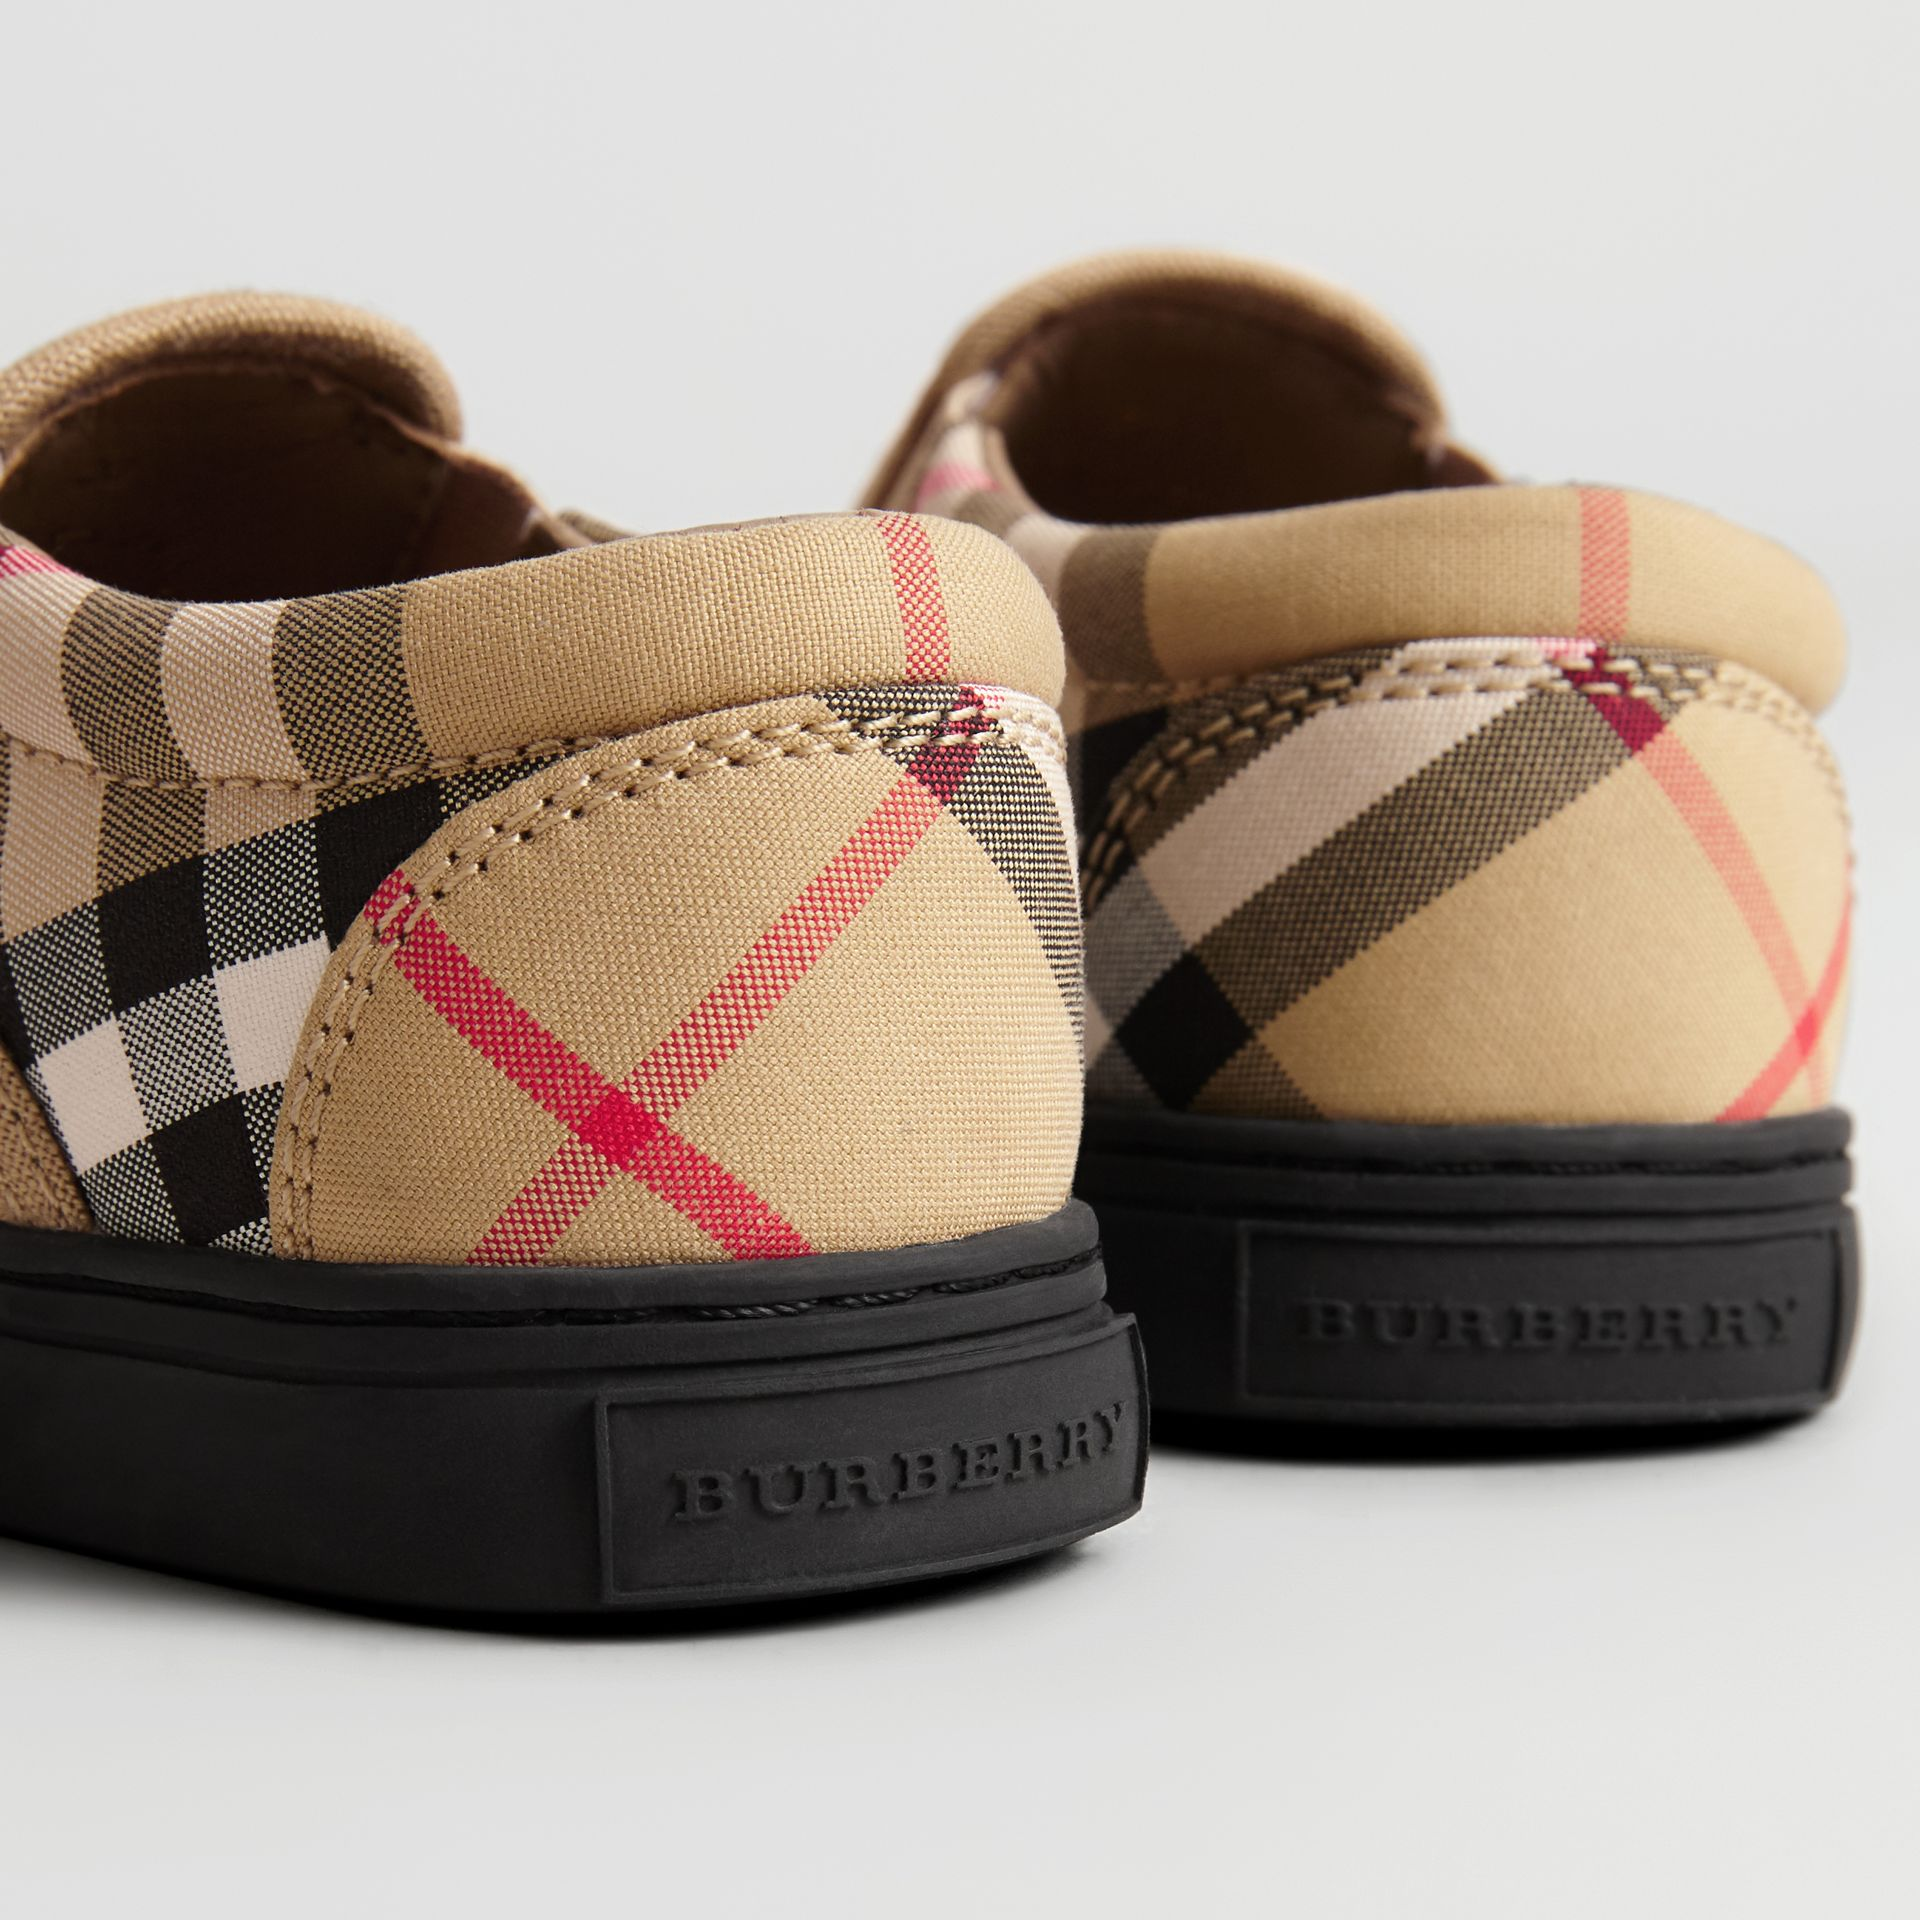 Sneakers sans lacets en cuir à motif Vintage check (Jaune Antique/noir) - Enfant | Burberry Canada - photo de la galerie 1